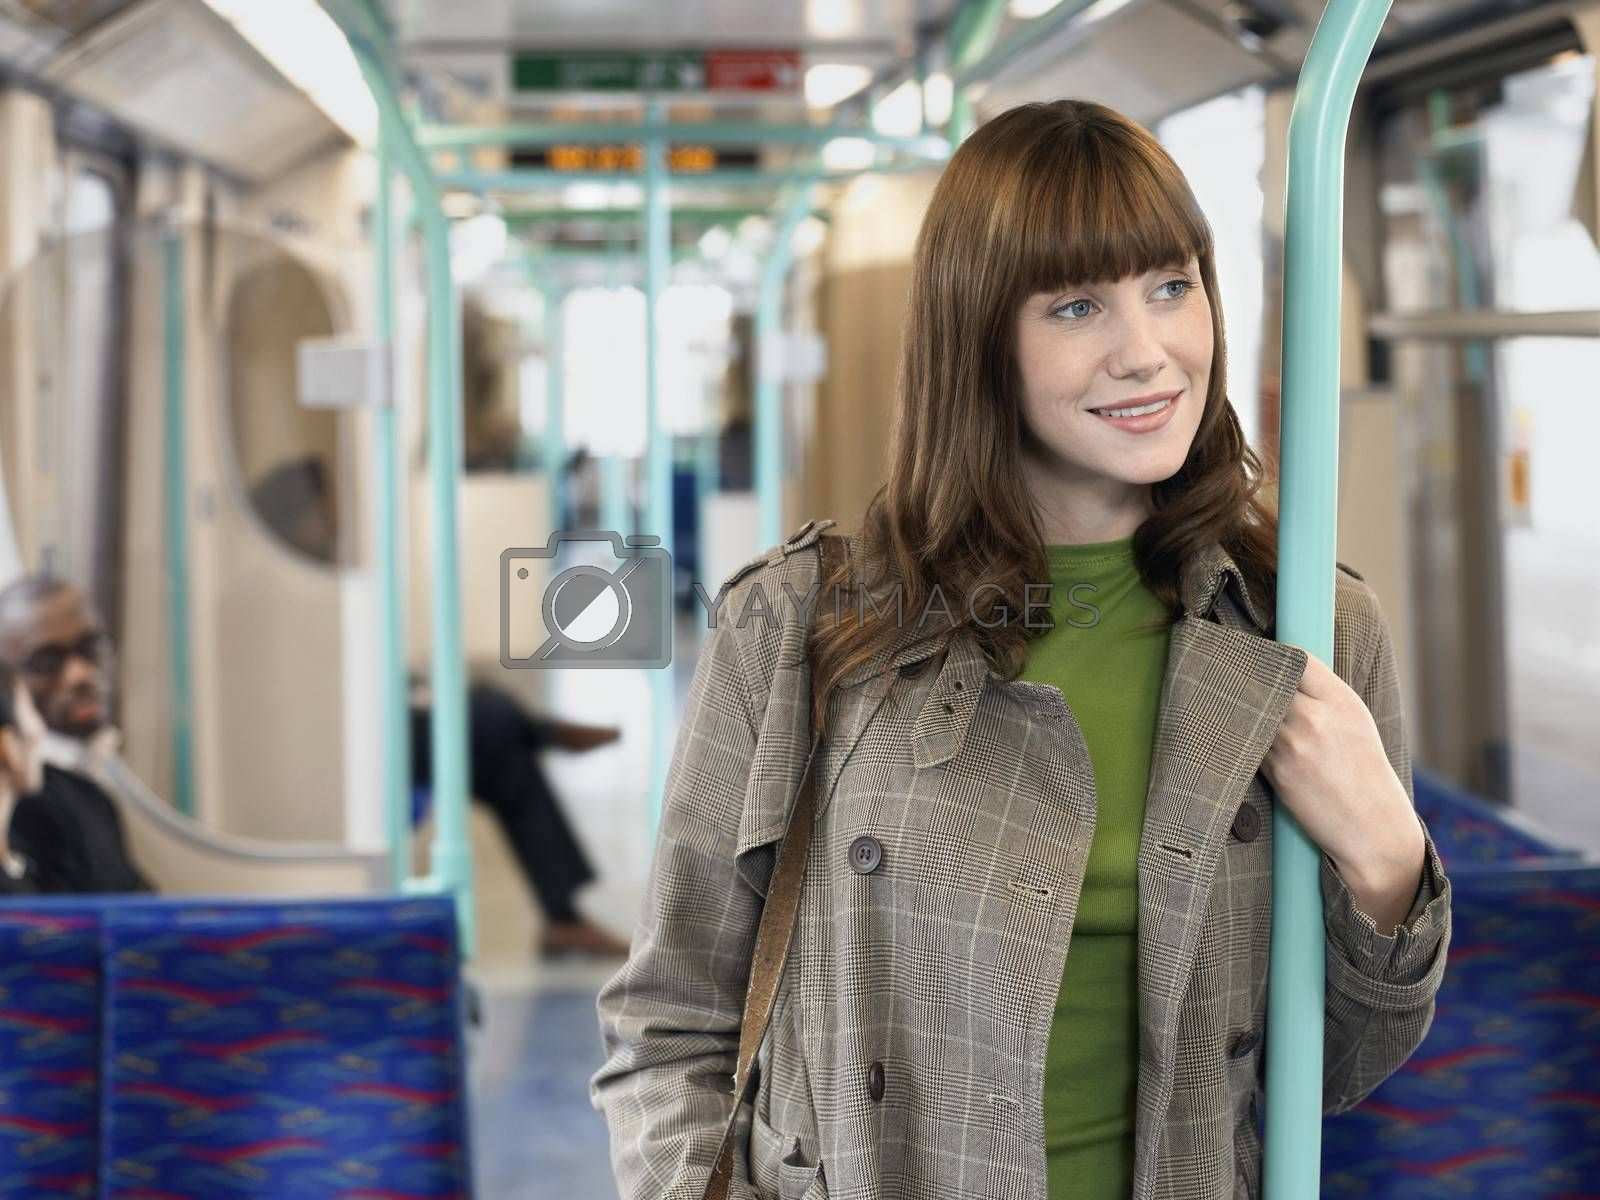 Smiling Woman Holding Bar In Commuter Train